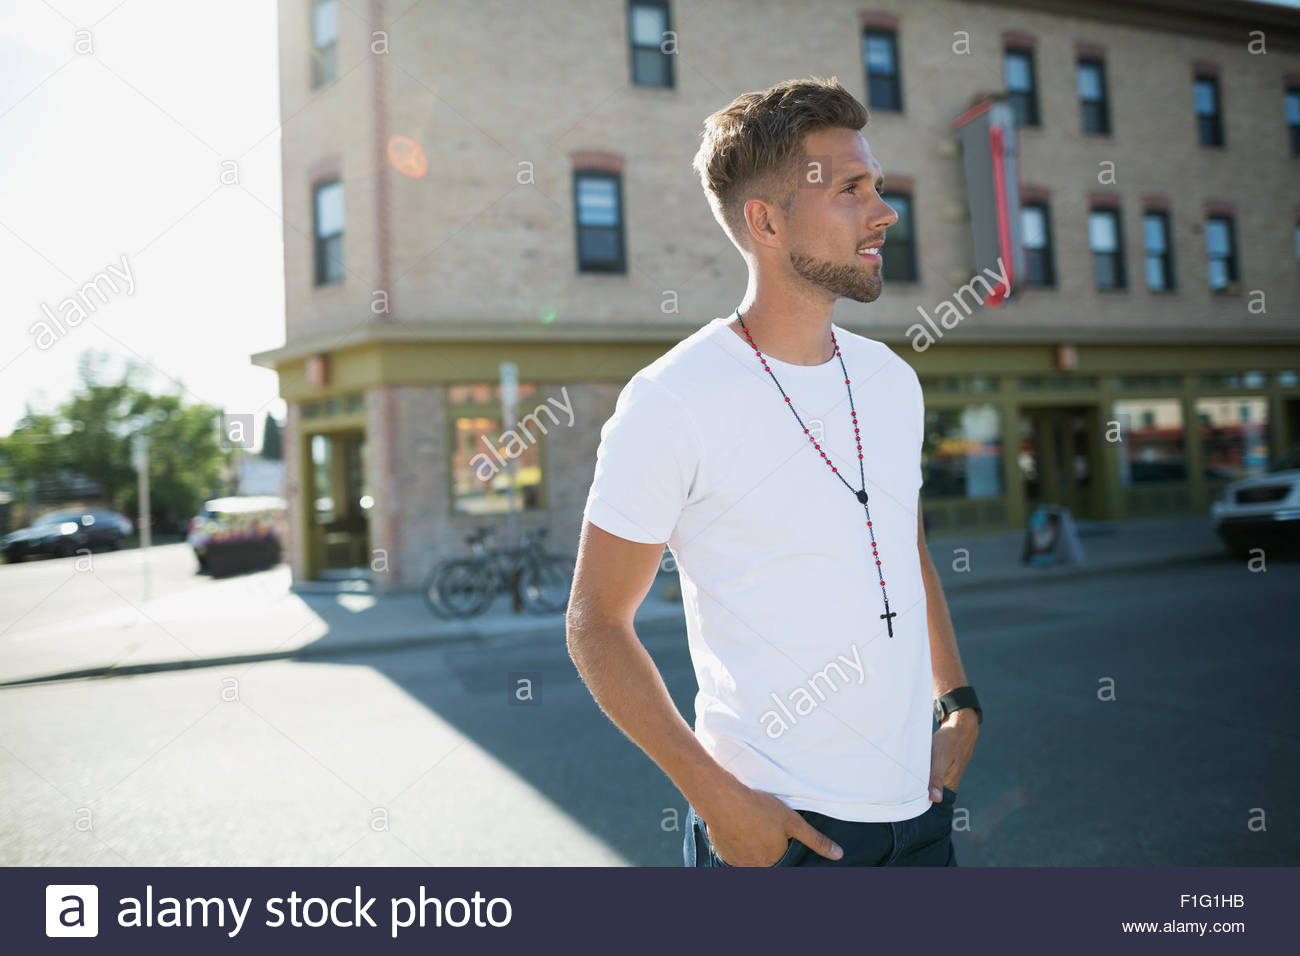 Man crossing sunny street - Stock Image